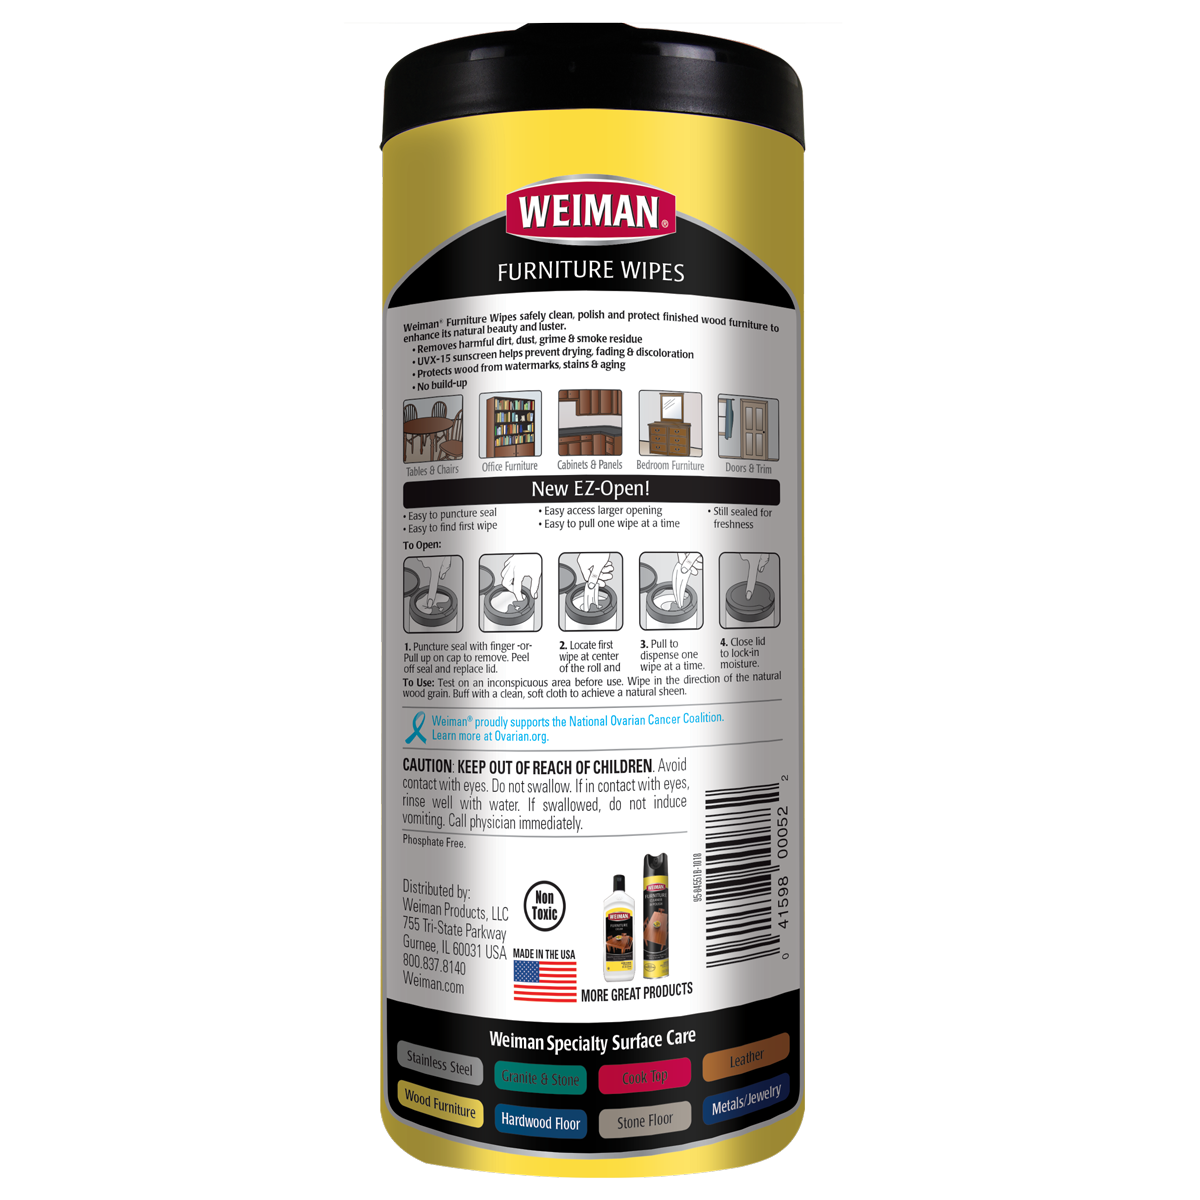 Weiman Furniture Cleaning Wipes back label